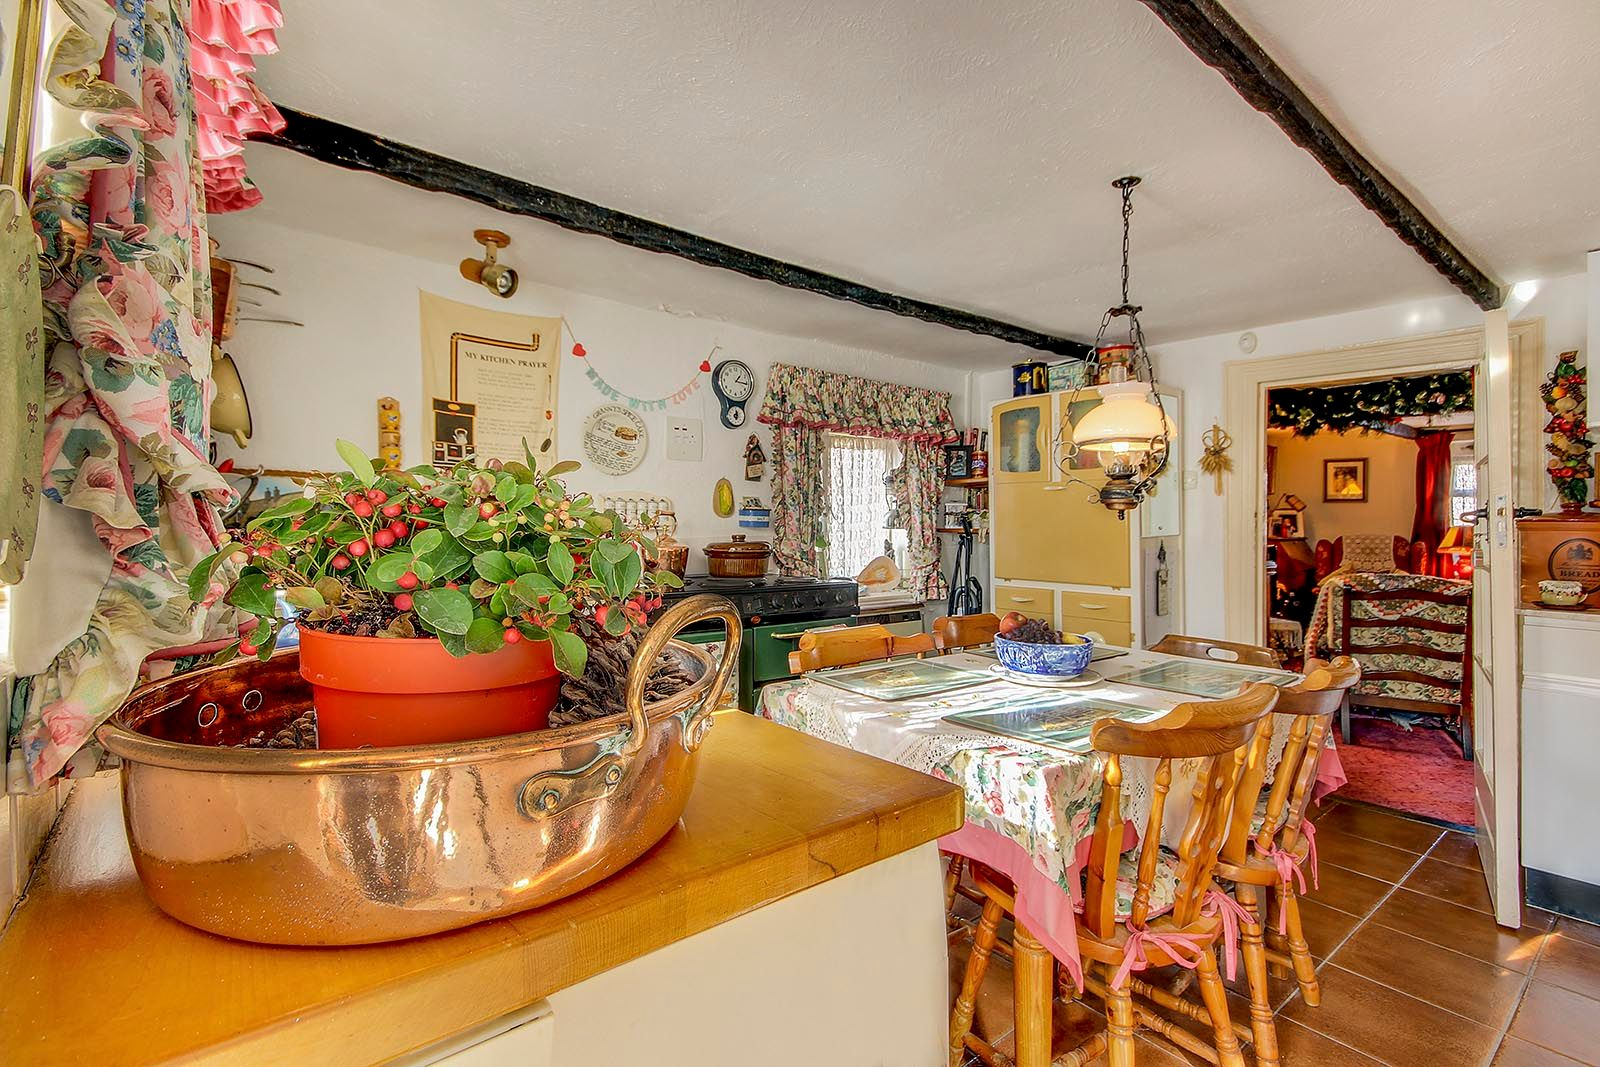 2 bed House for sale in Arundel - Kitchen/Dining Room (Property Image 3)